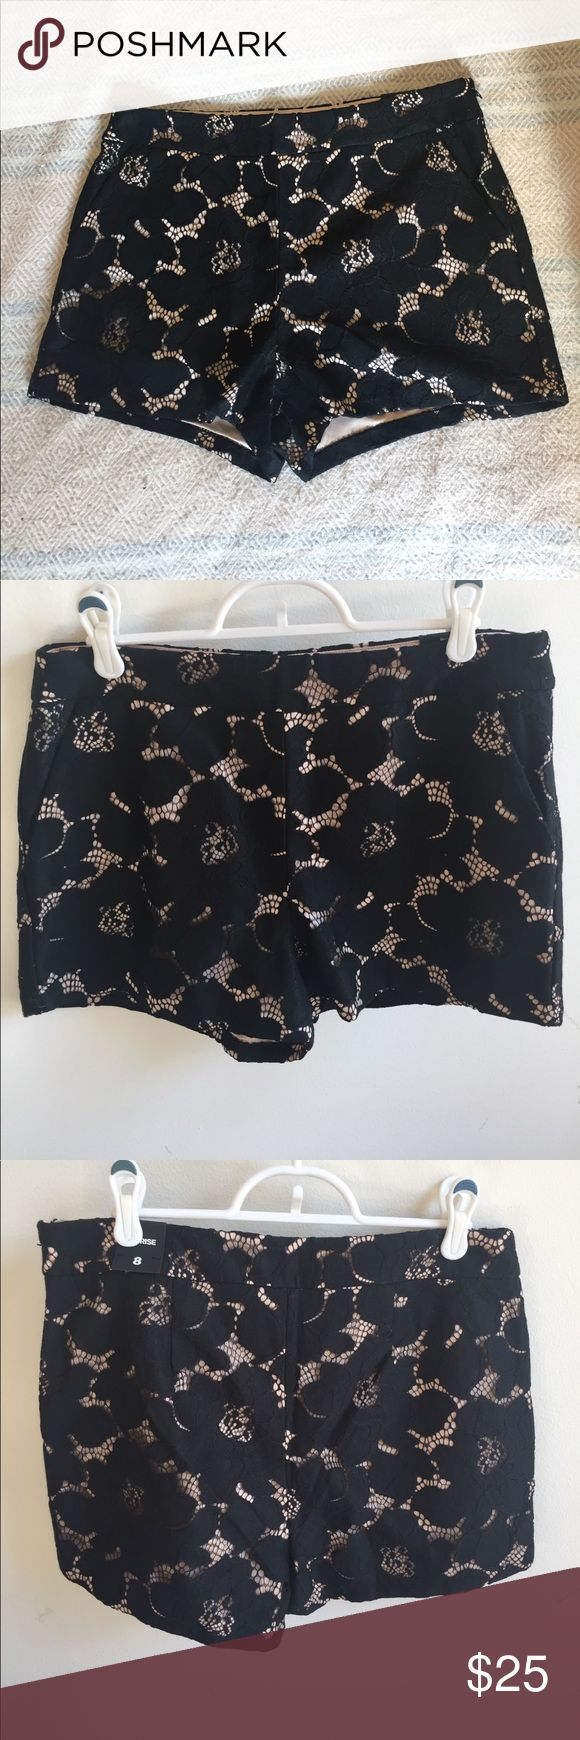 Express black lace over nude shorts Bought these from Express but they are a little too big. So cute though, with a floral lace pattern over a beige-colored lining. Mid-rise and measure about 13.5 inches from top of waist to hem. Hidden side zipper. Express Shorts